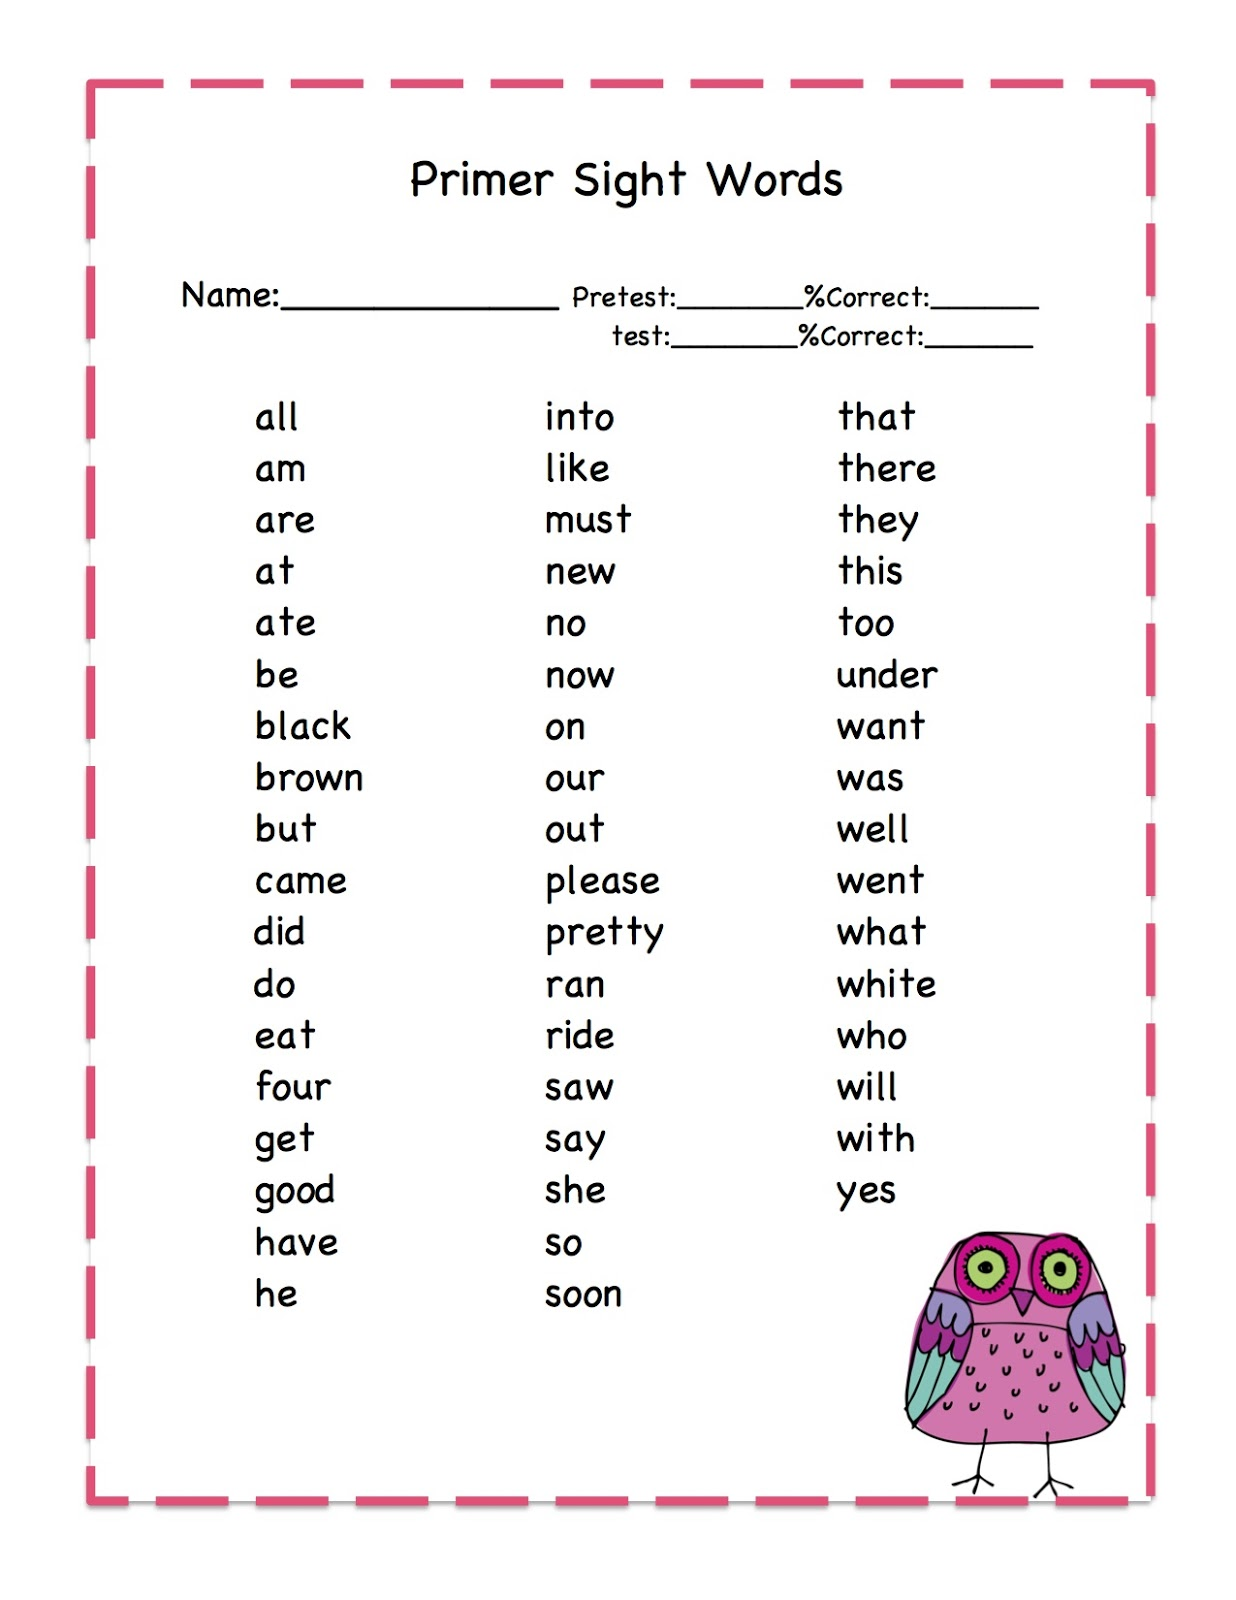 Owls Primer Sight Words Printable ~ Preschool Printables